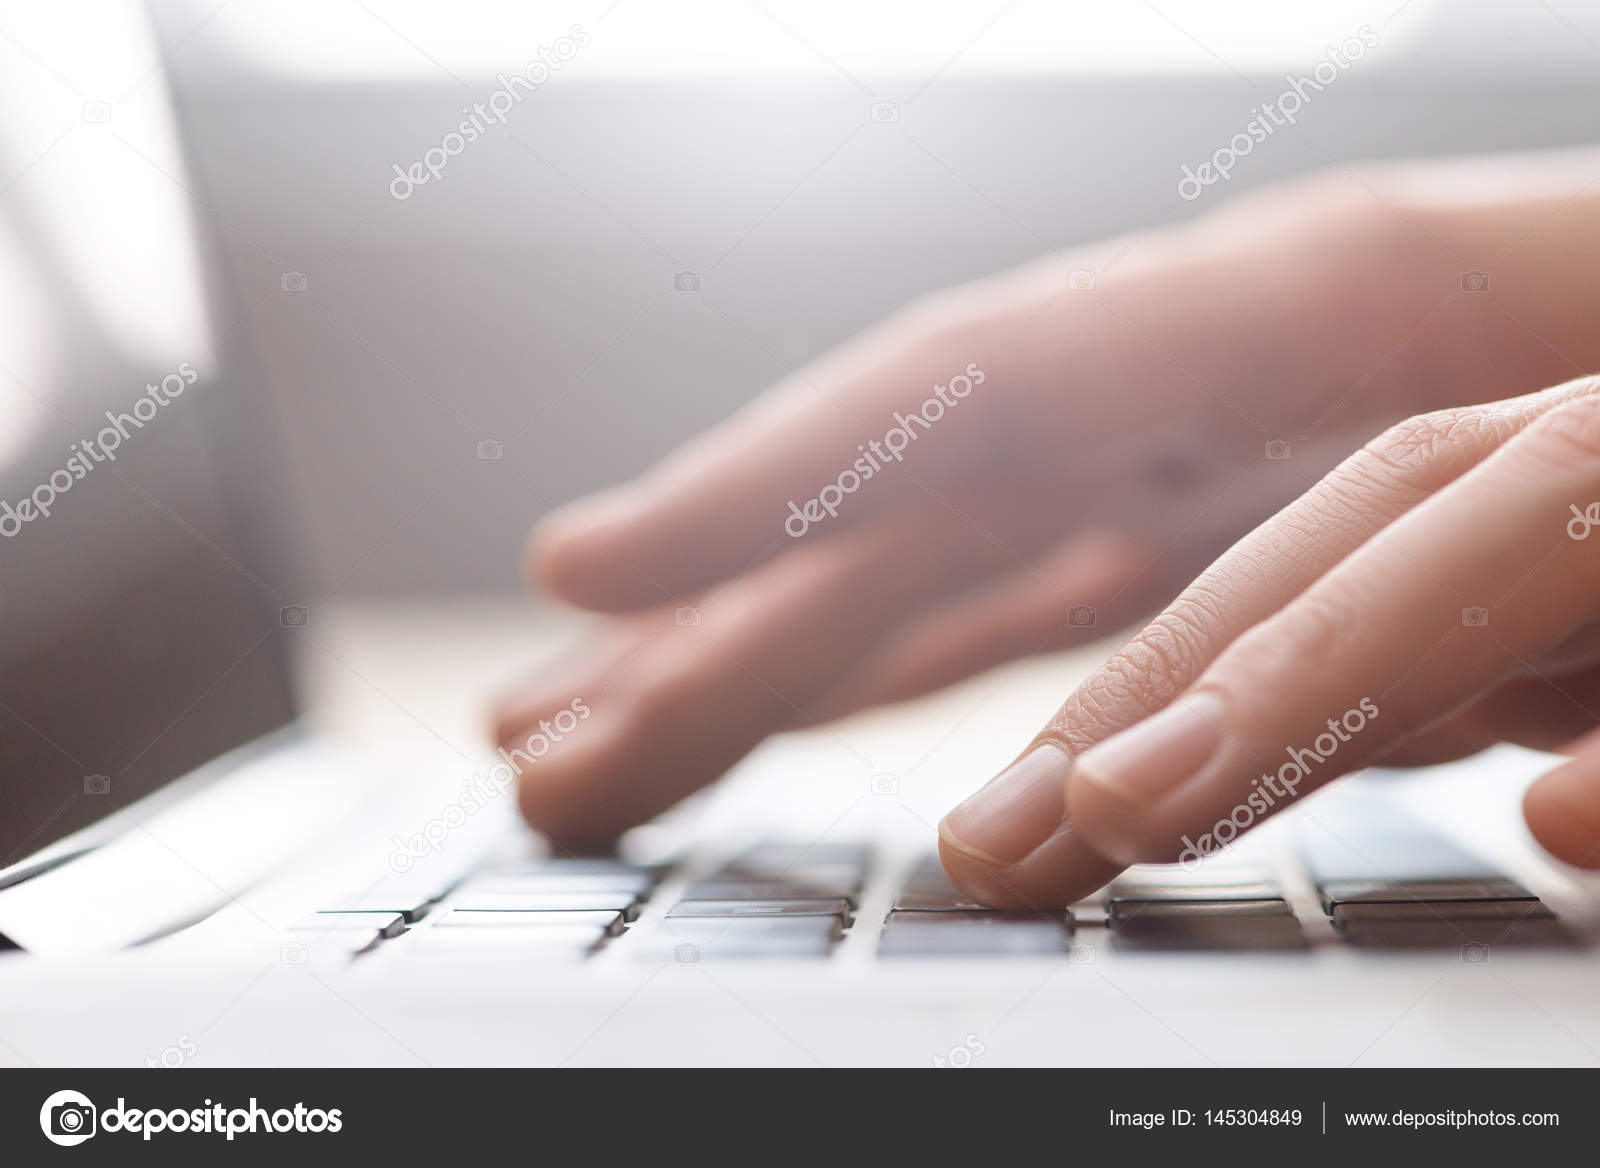 https://fks.immobilien/wp-content/uploads/2020/08/depositphotos_145304849-stock-photo-hands-types-on-keyboard.jpg